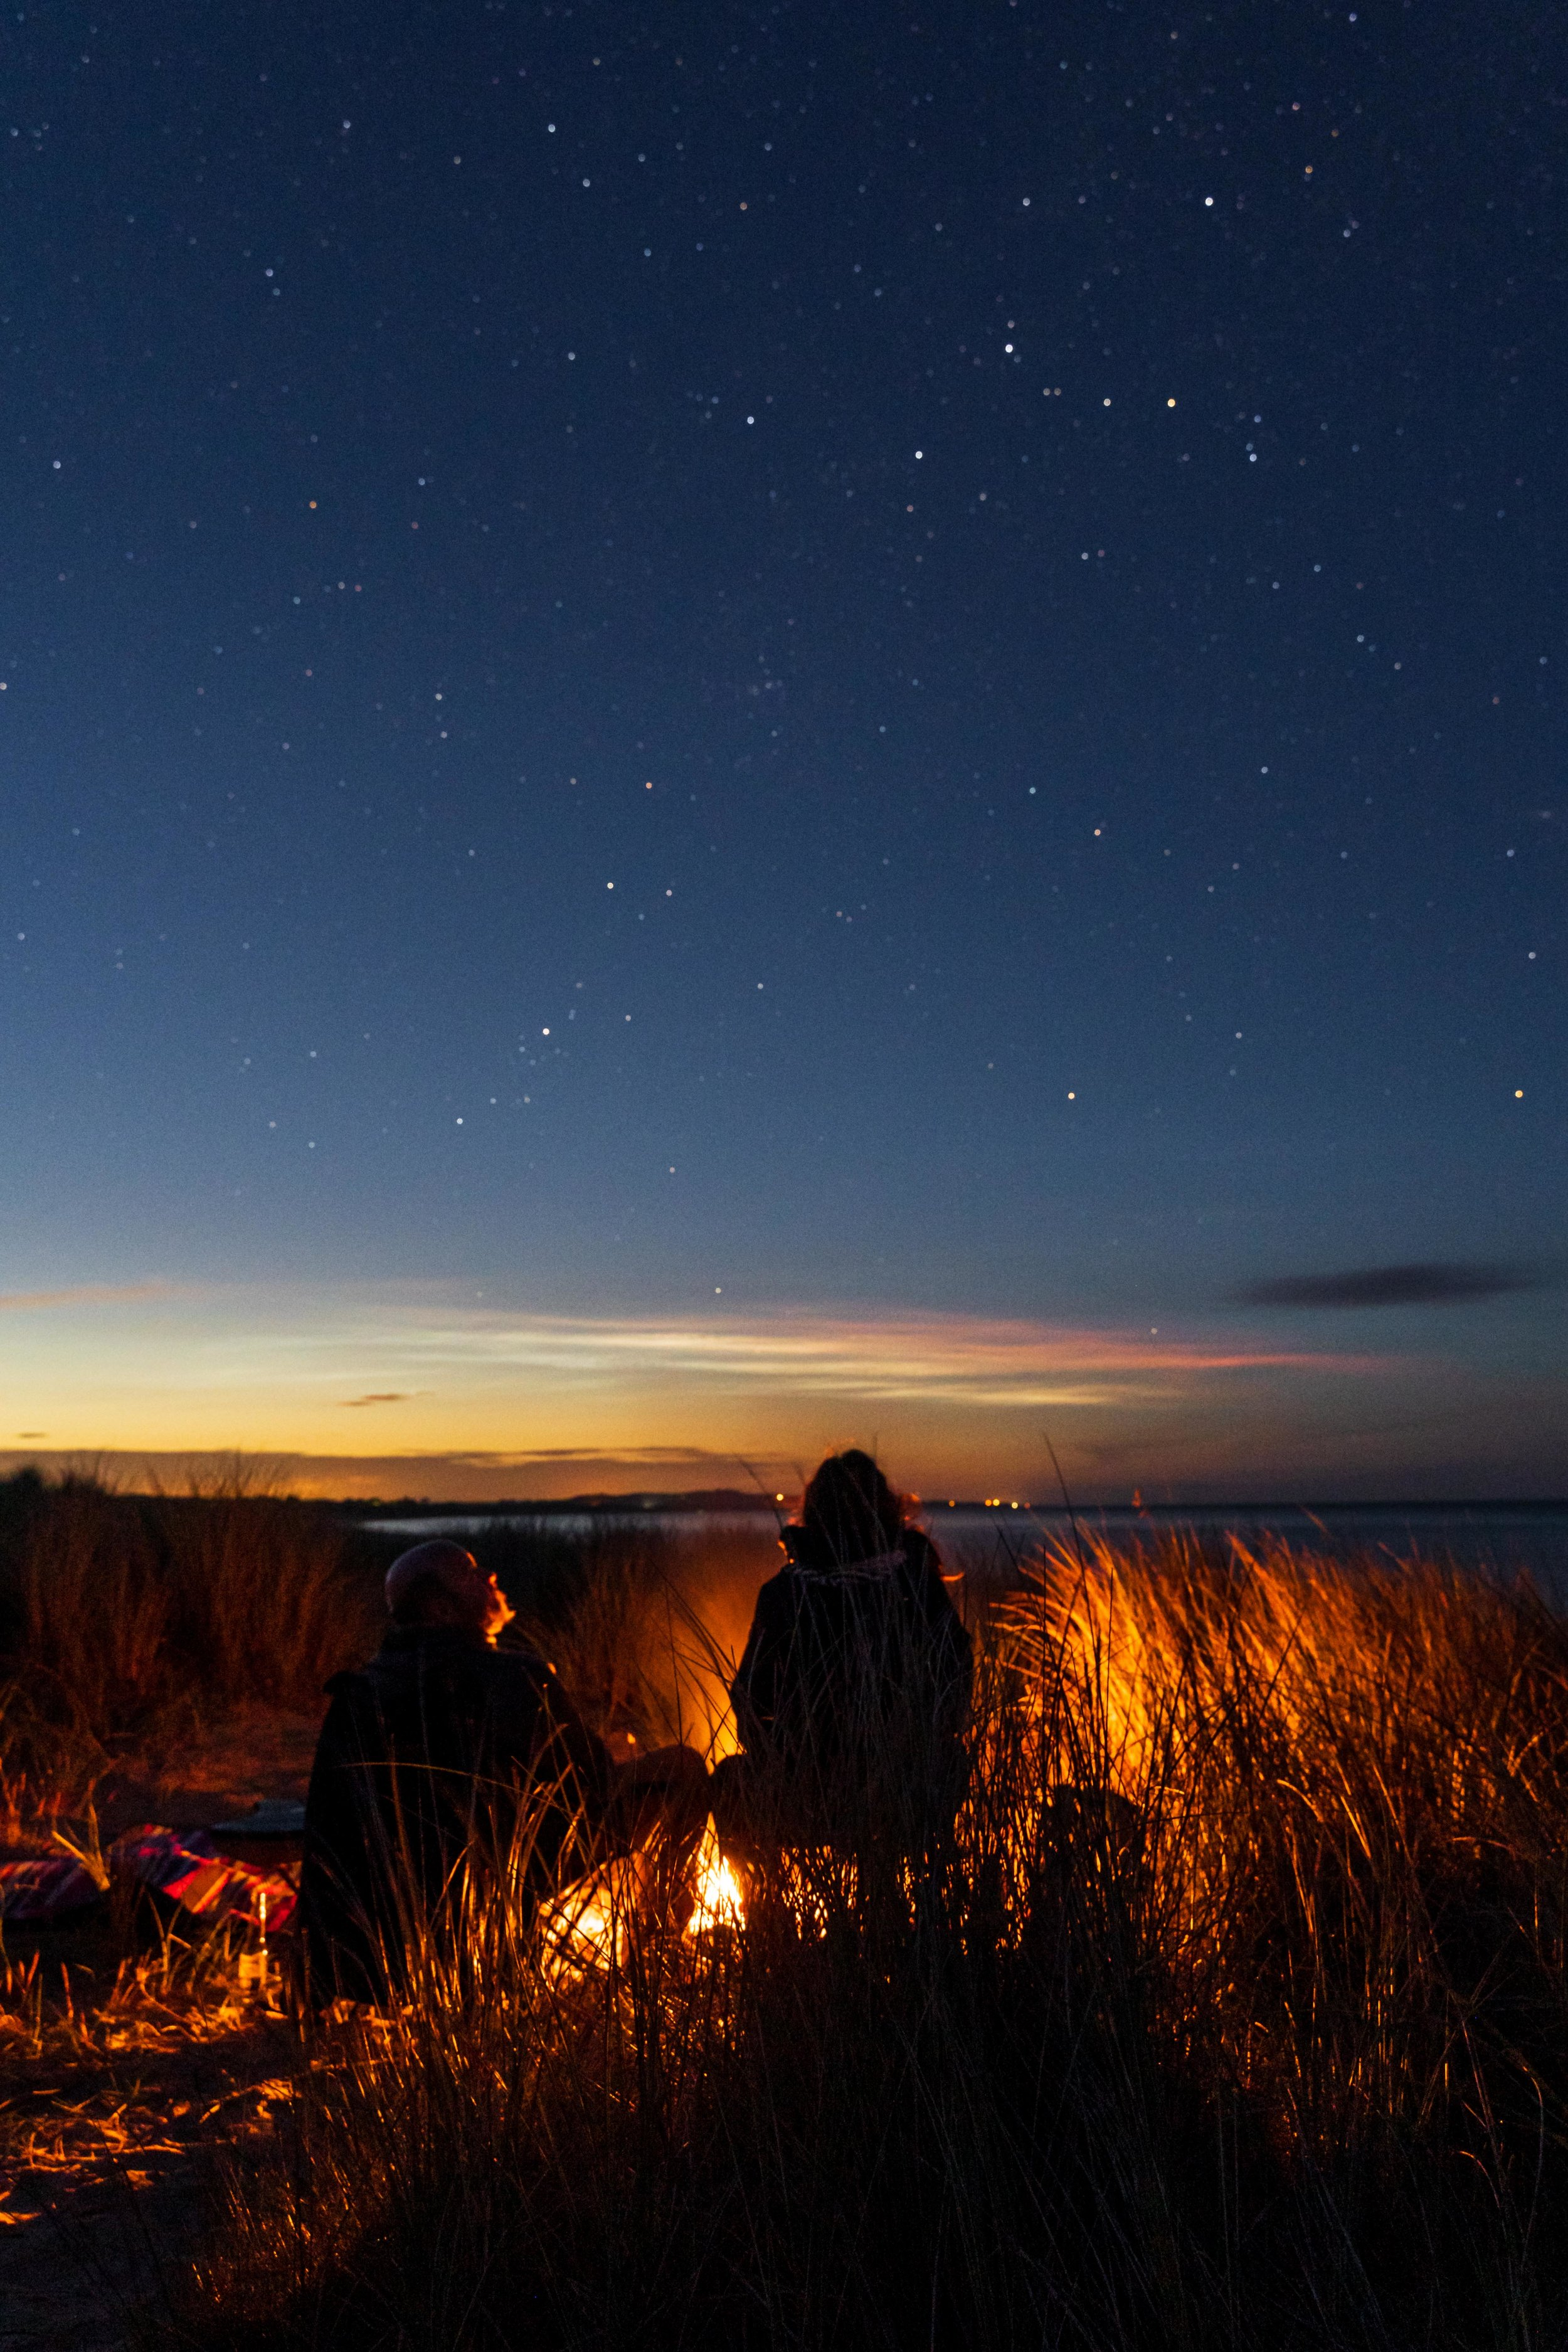 The Raven forest and beach wexford ireland campfire couple under stars.jpg